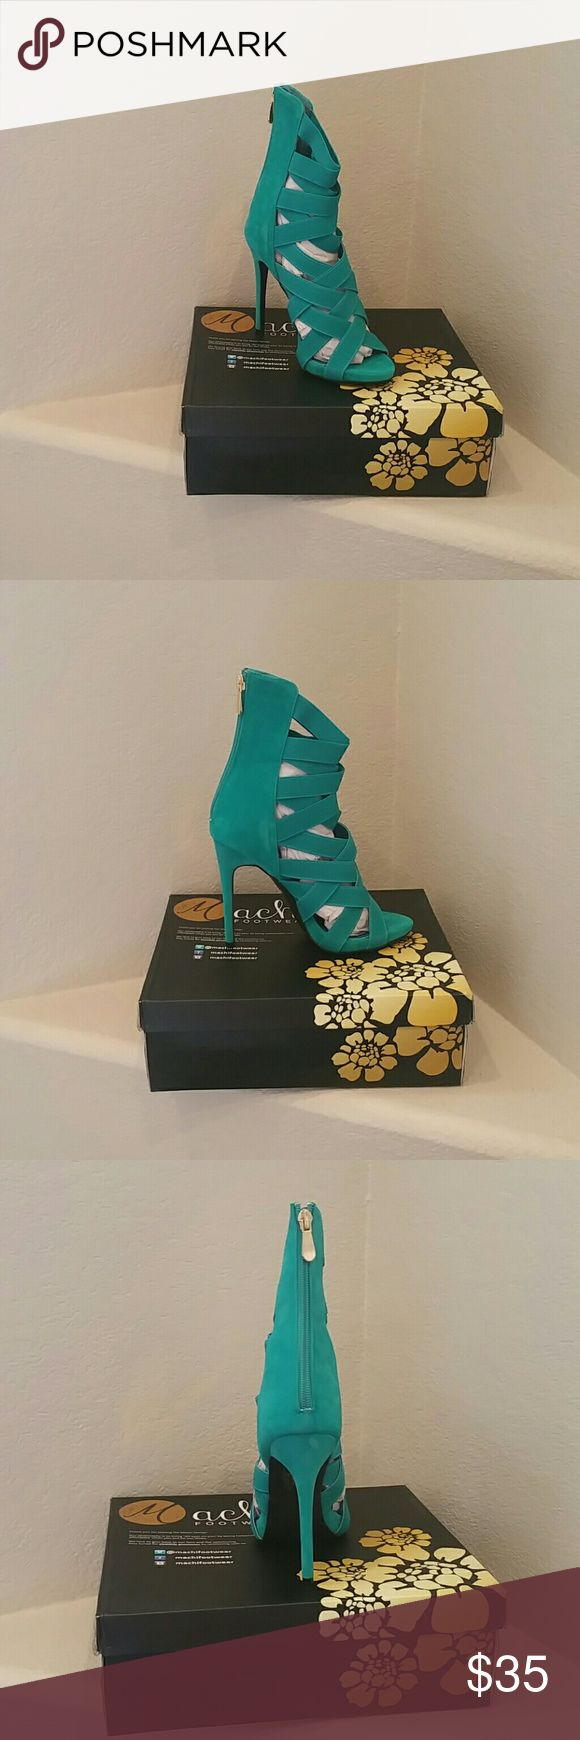 Women's size 8 teal high heels These teals strappy high heels are HOT! Never worn brand New! Shoes Heels